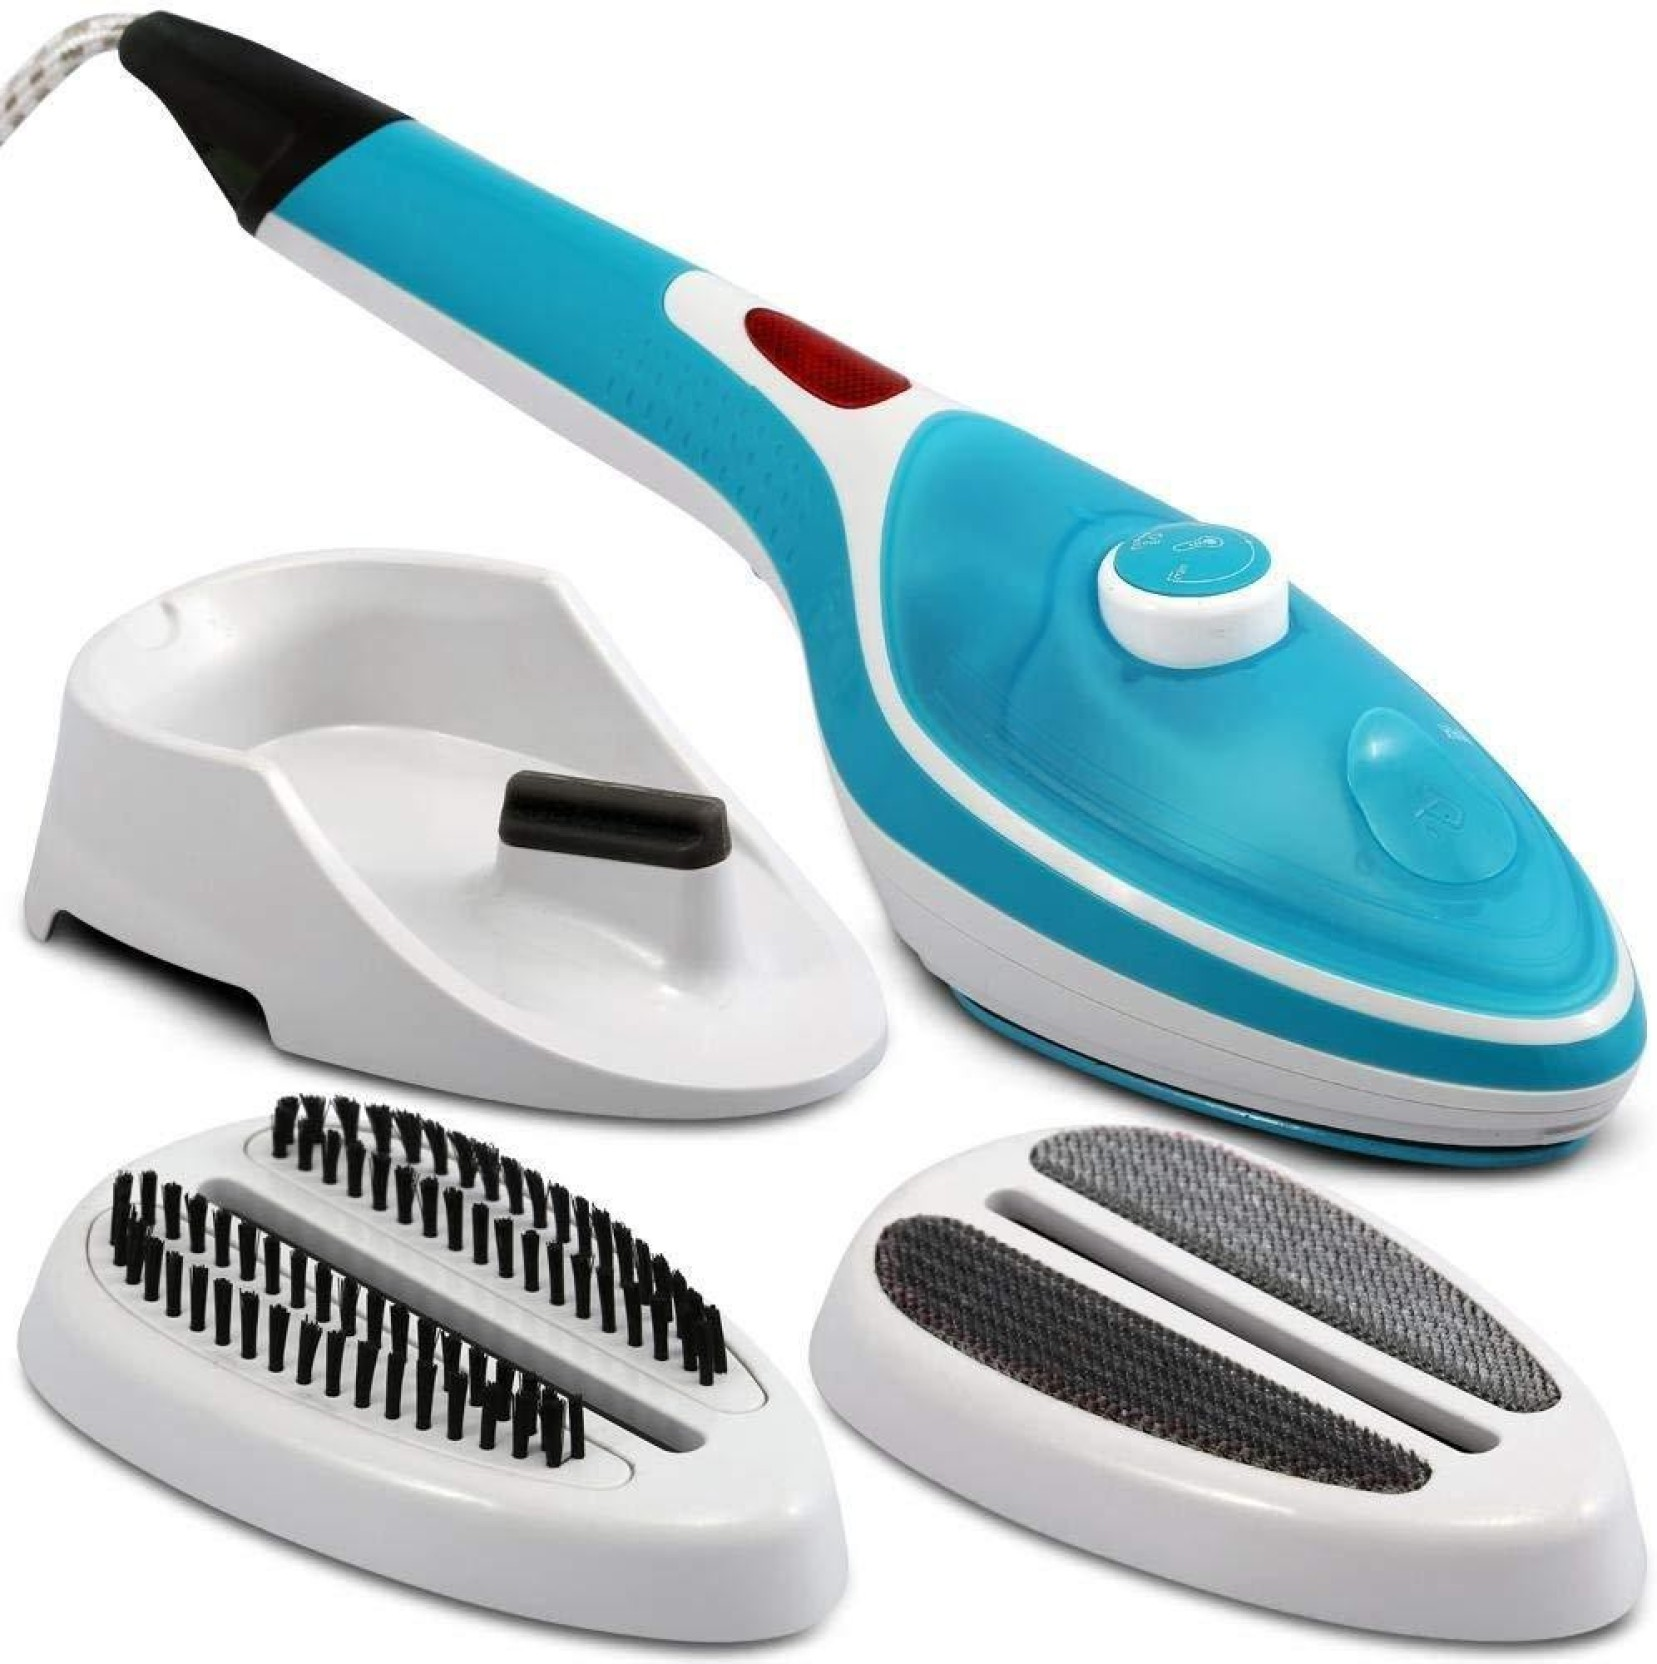 Steam Iron with Power Bank for Home//Travel, Handheld Garment//Fabric Steamer hellowood Portable Steamer for Clothes